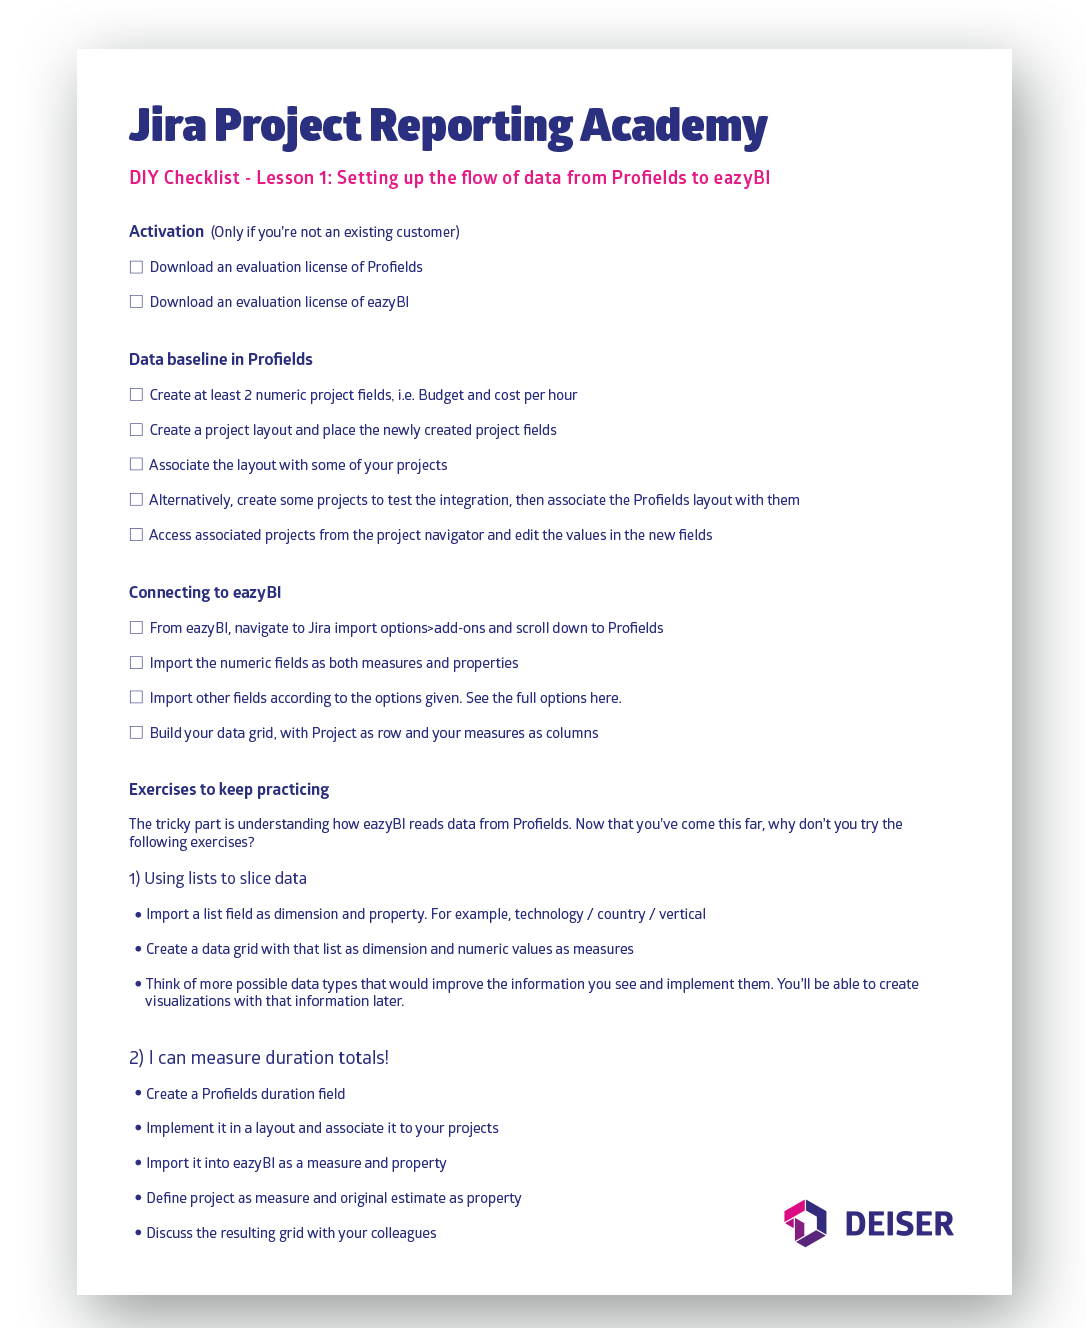 The Jira Project Reporting Academy